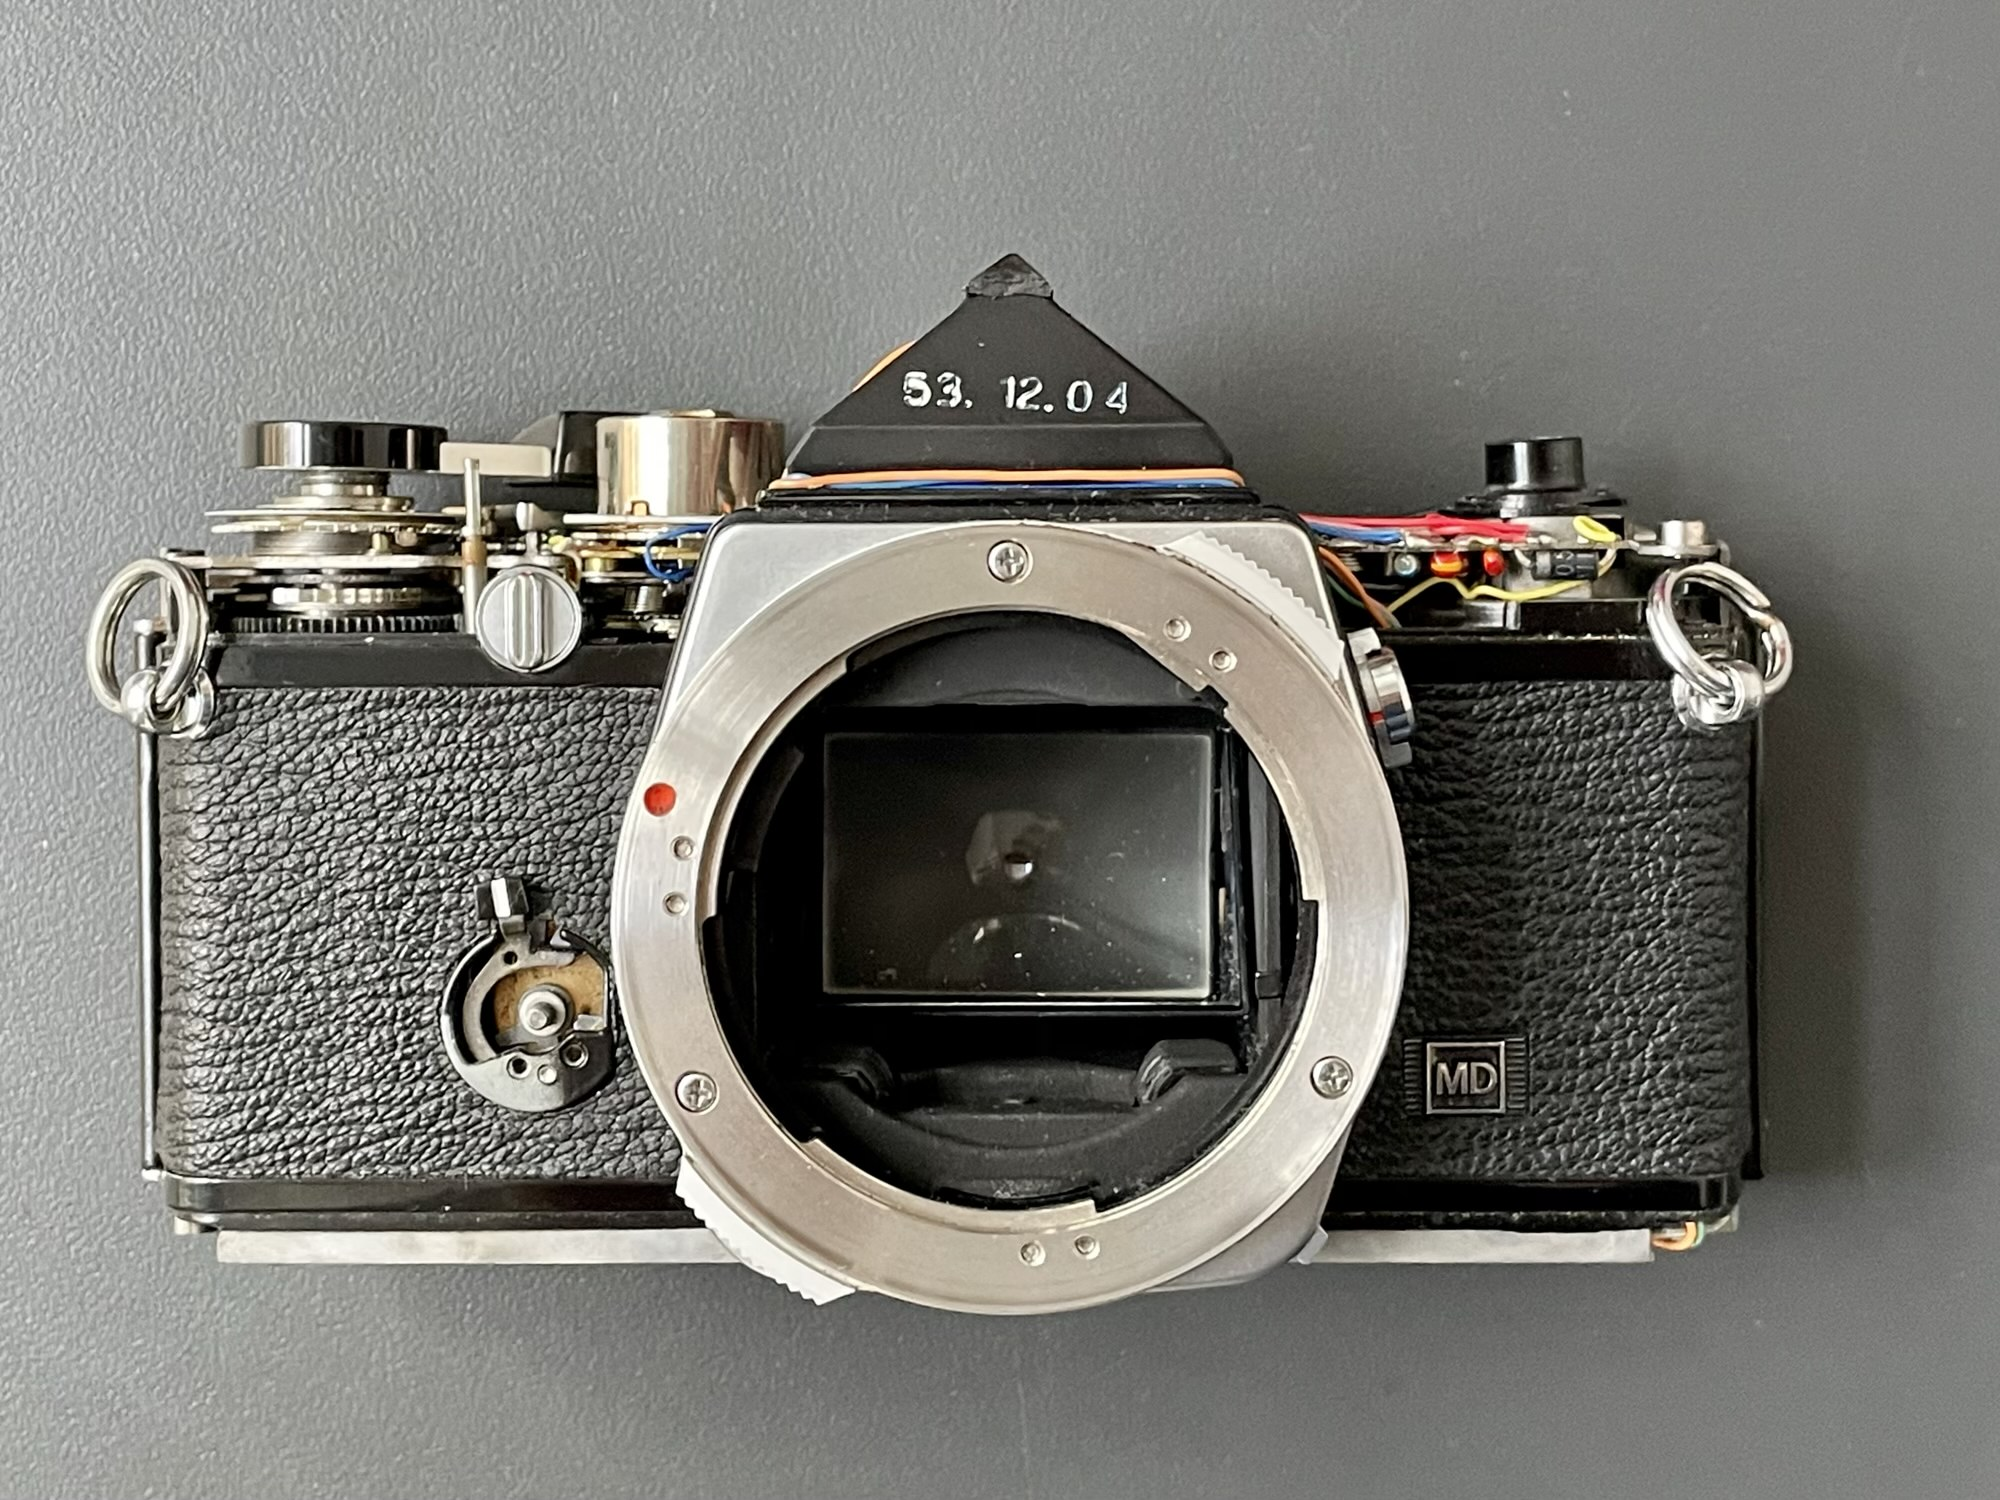 Olympus OM-2n Camera with top and bottom plates removed